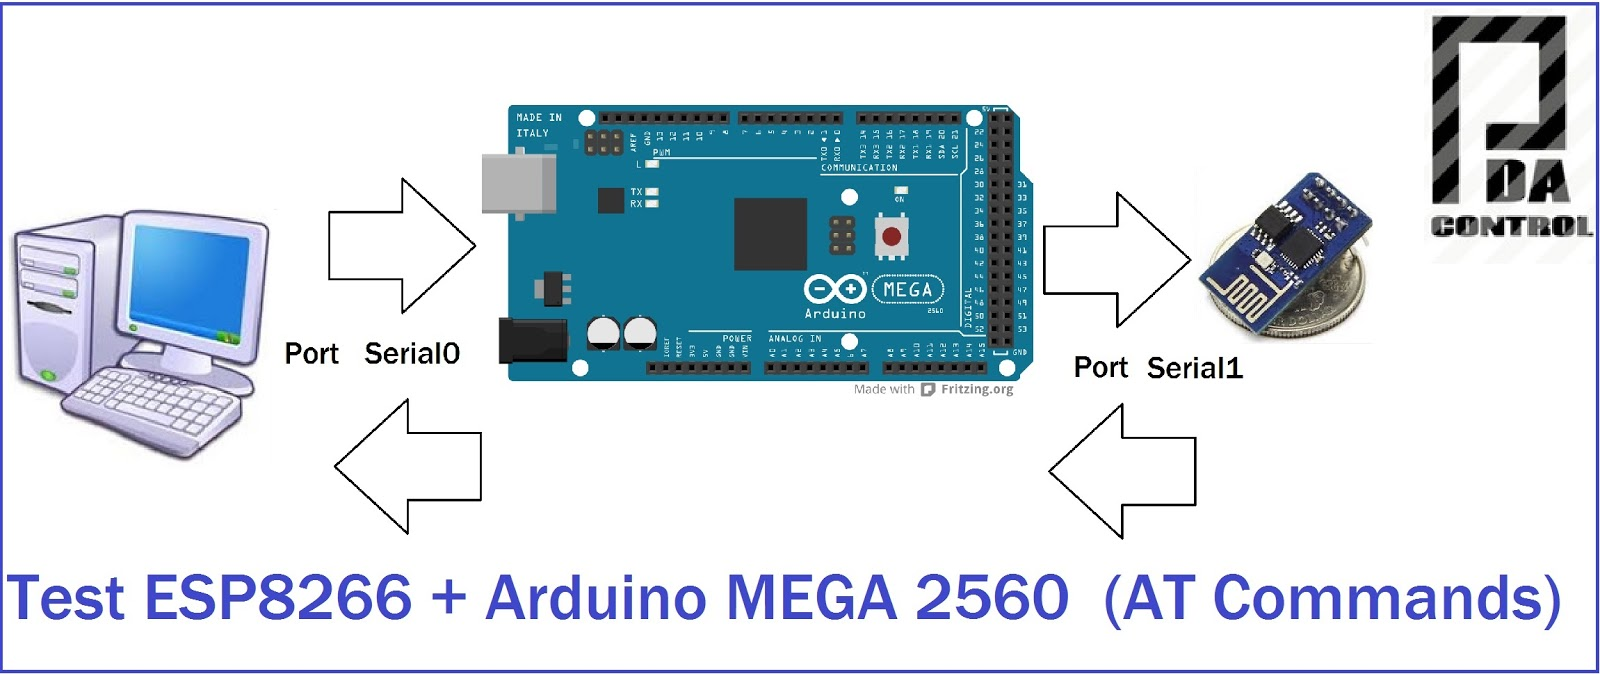 Test Arduino Mega 2560 and ESP8266 (AT Commands) - PDAControl